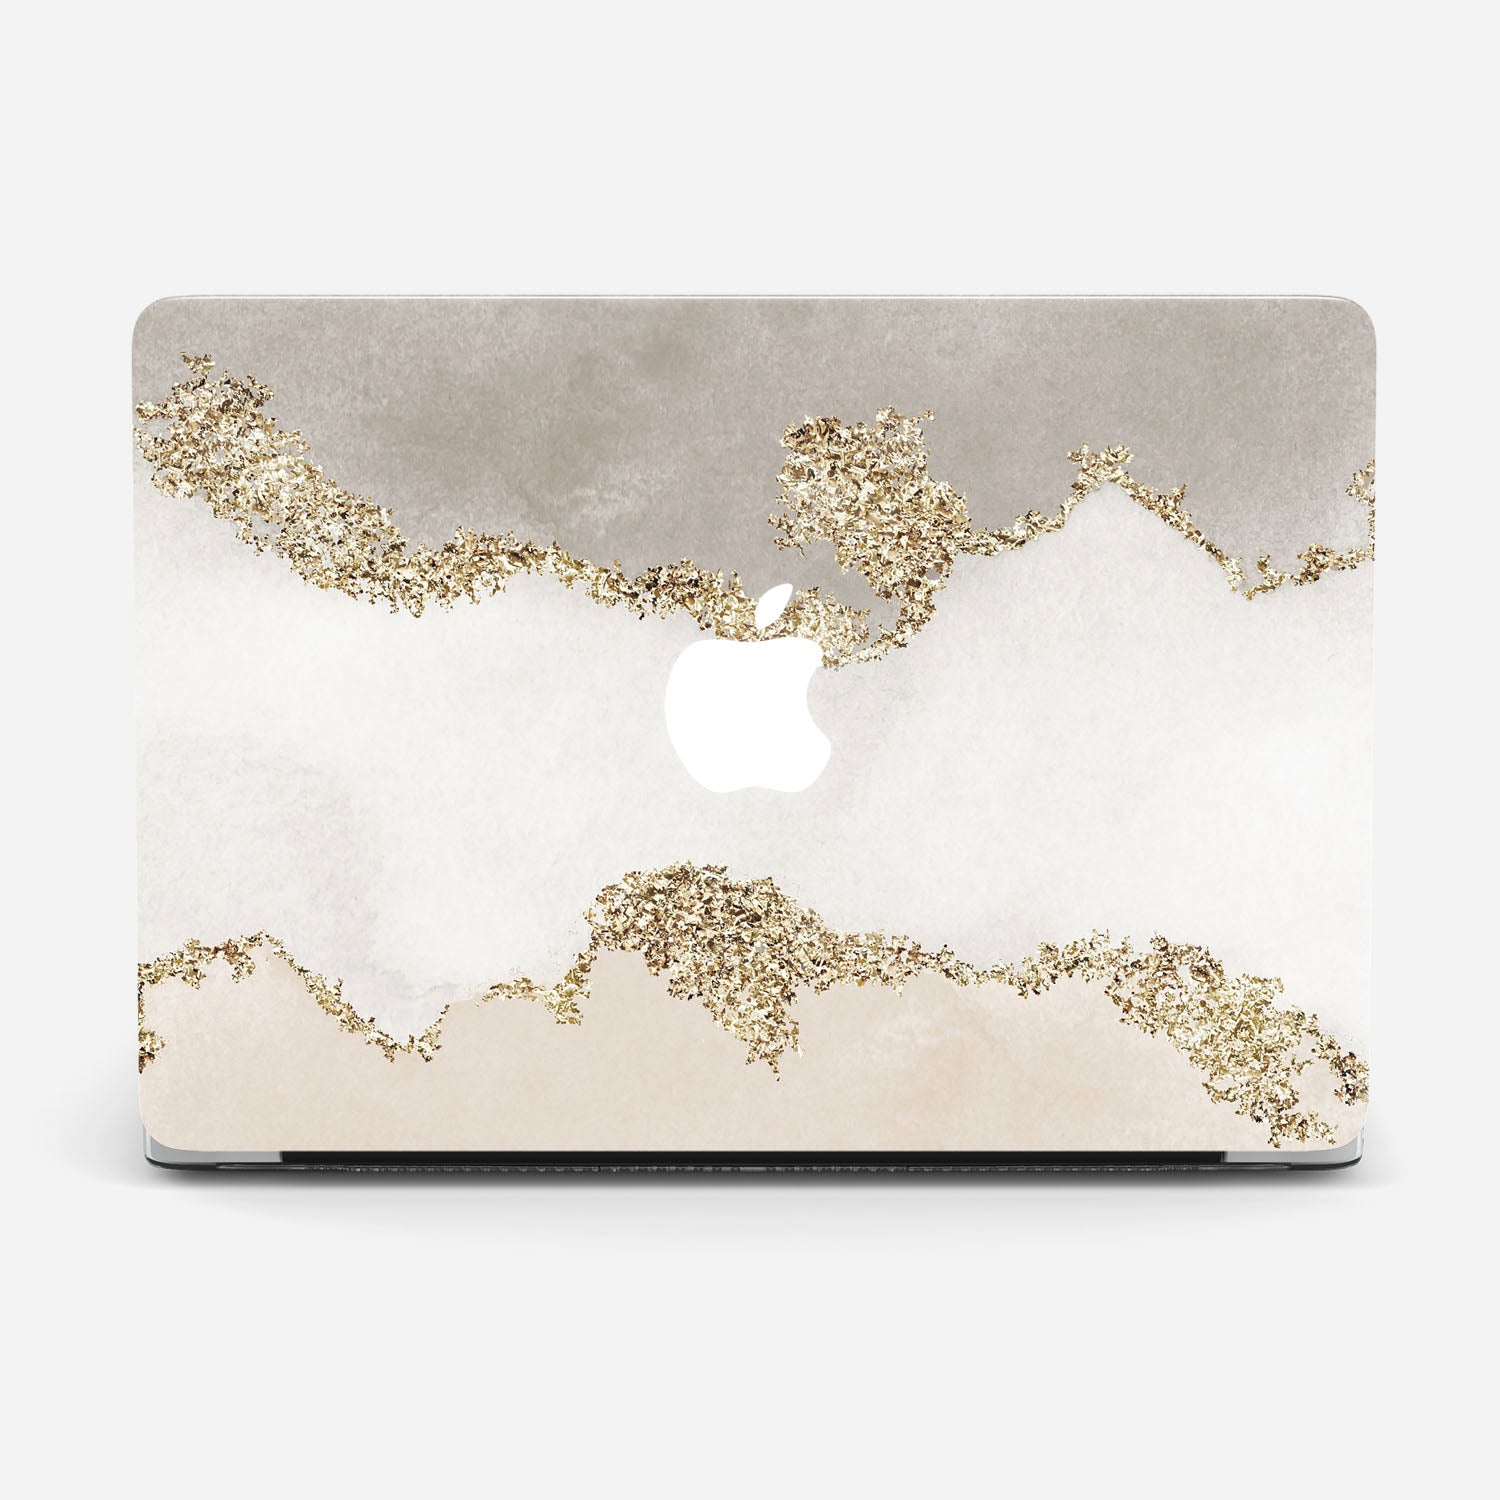 GOLDEN COAST Macbook Pro skins 15 inch | Pigtou